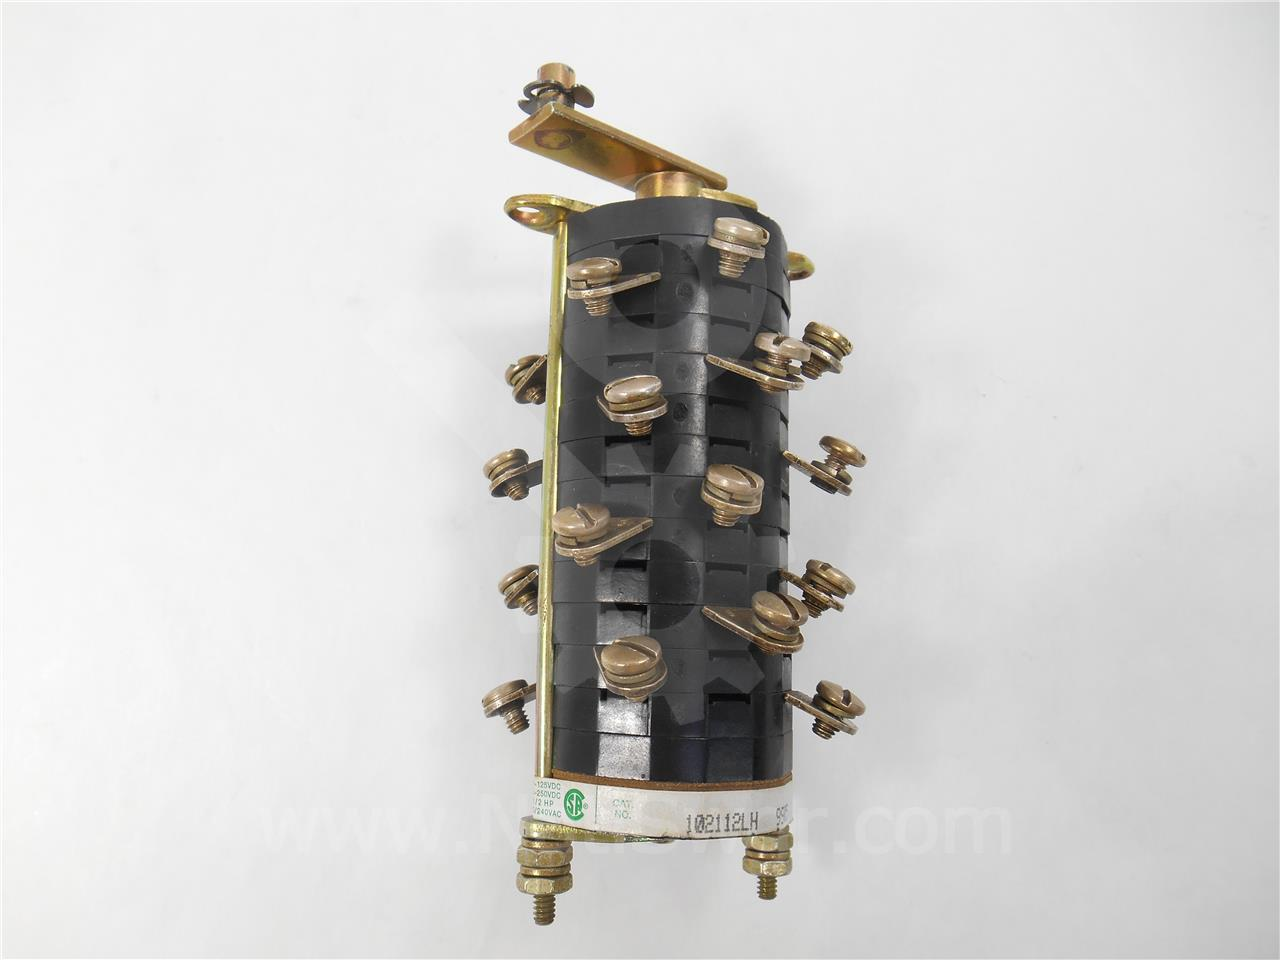 46040-484-50 Square D AUXILIARY SWITCH ASSEMBLY 7NO/7NC FOR VR VAD-5